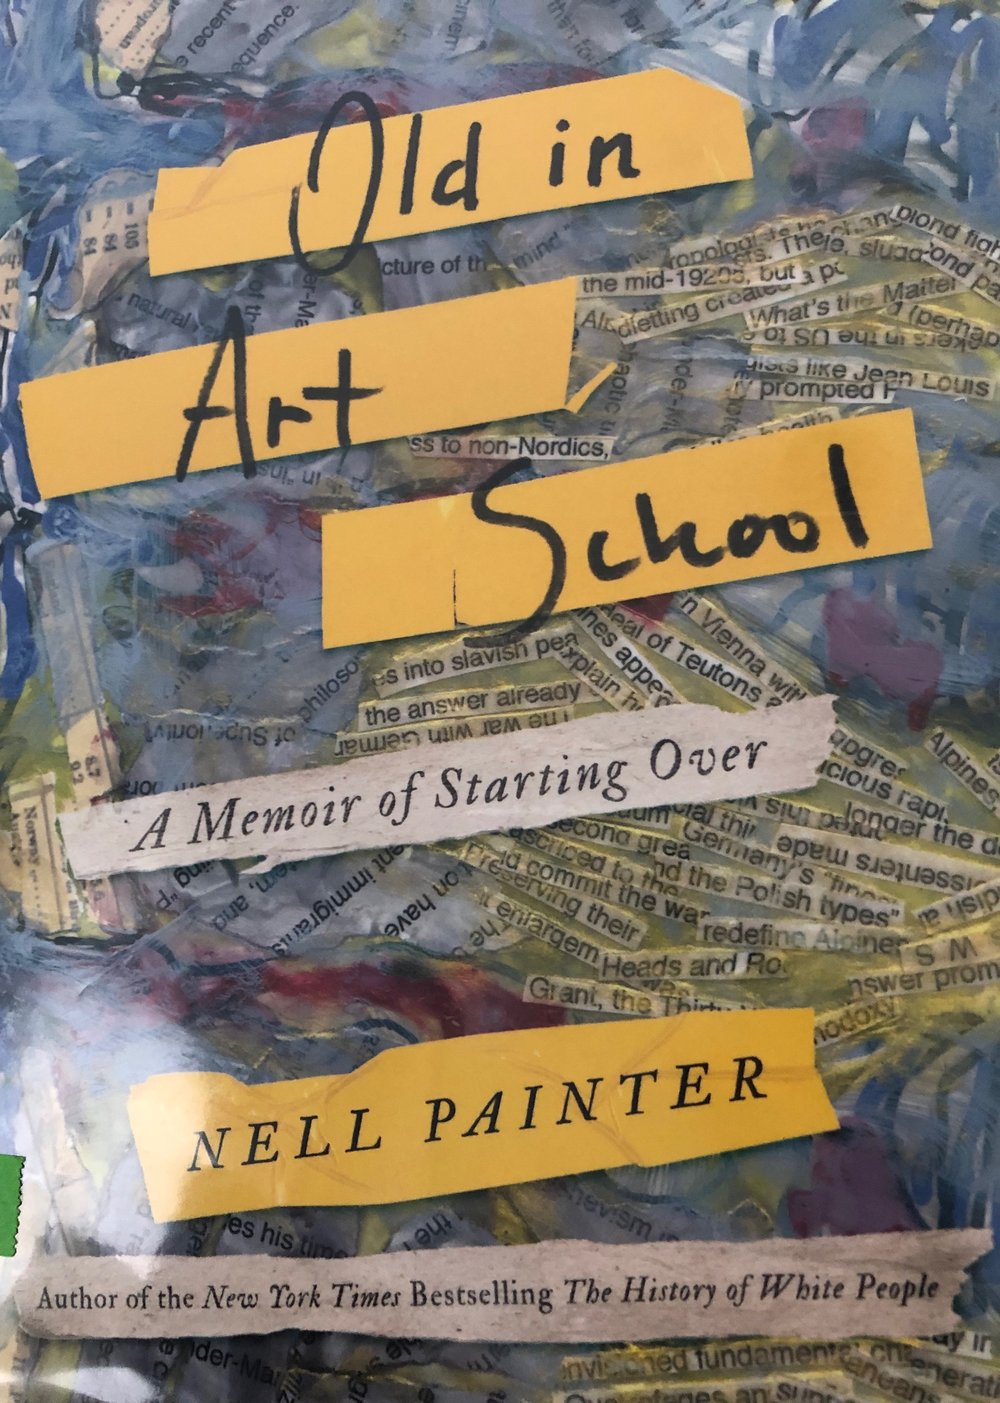 inspiration #1 - Old in Art School by Nell Painter